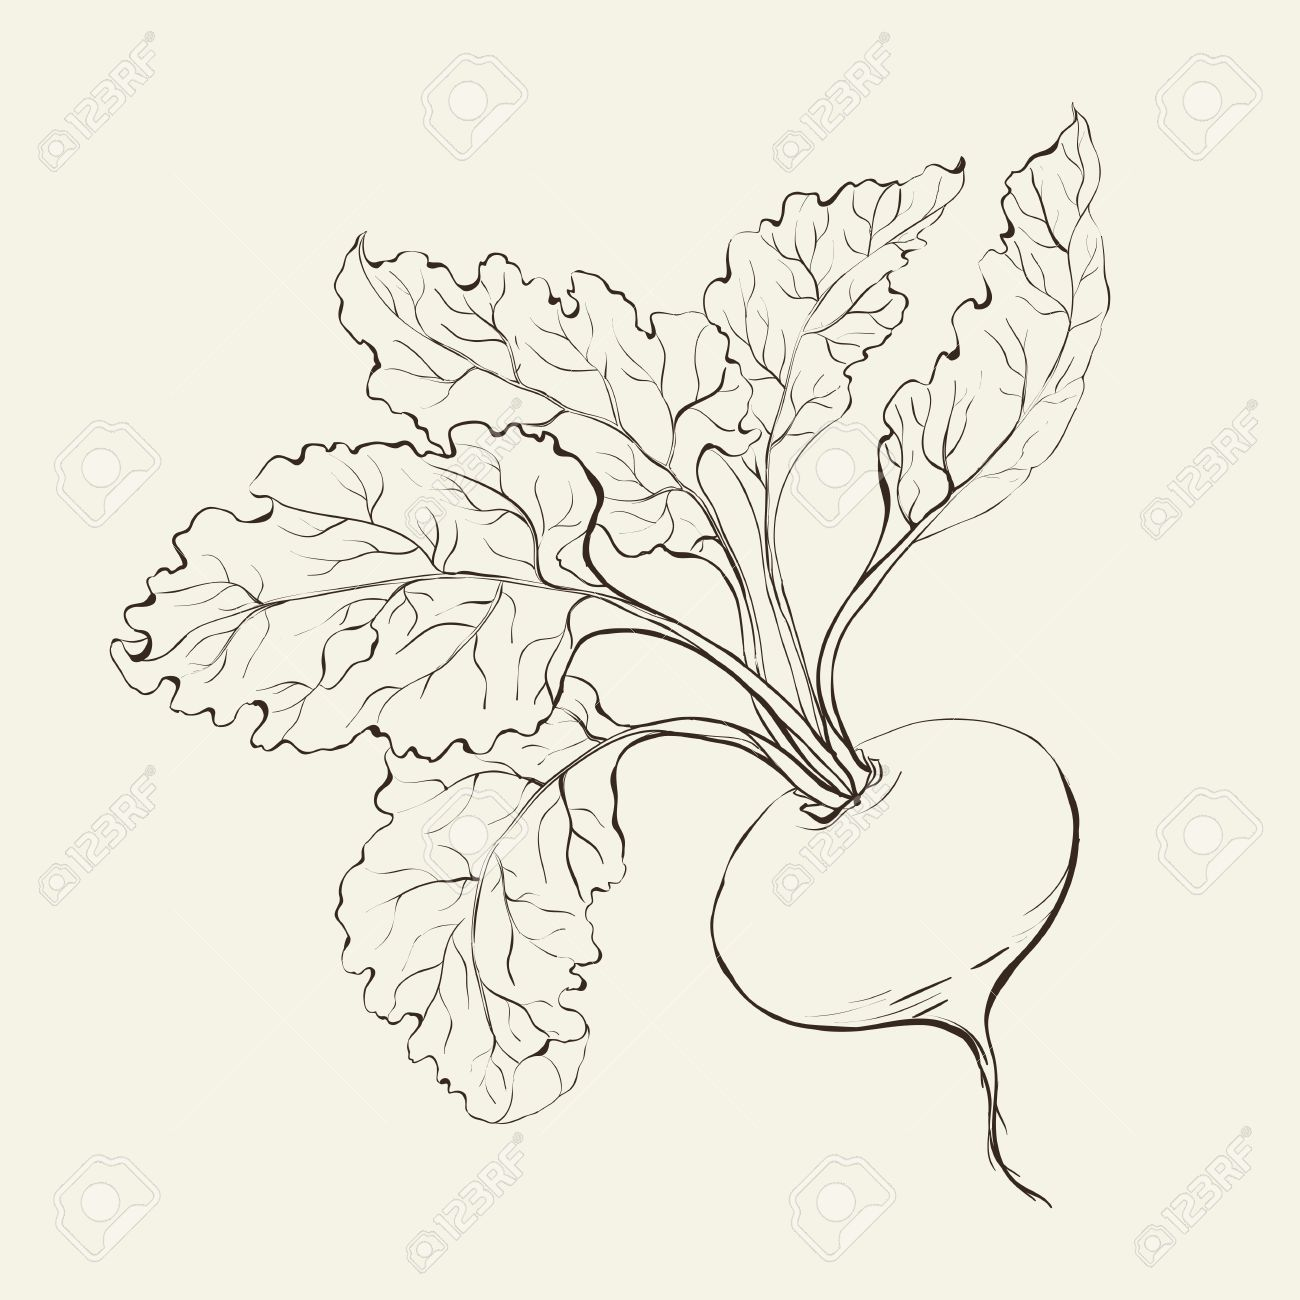 Beet root isolated on white  Vector illustration Stock Vector - 19063847